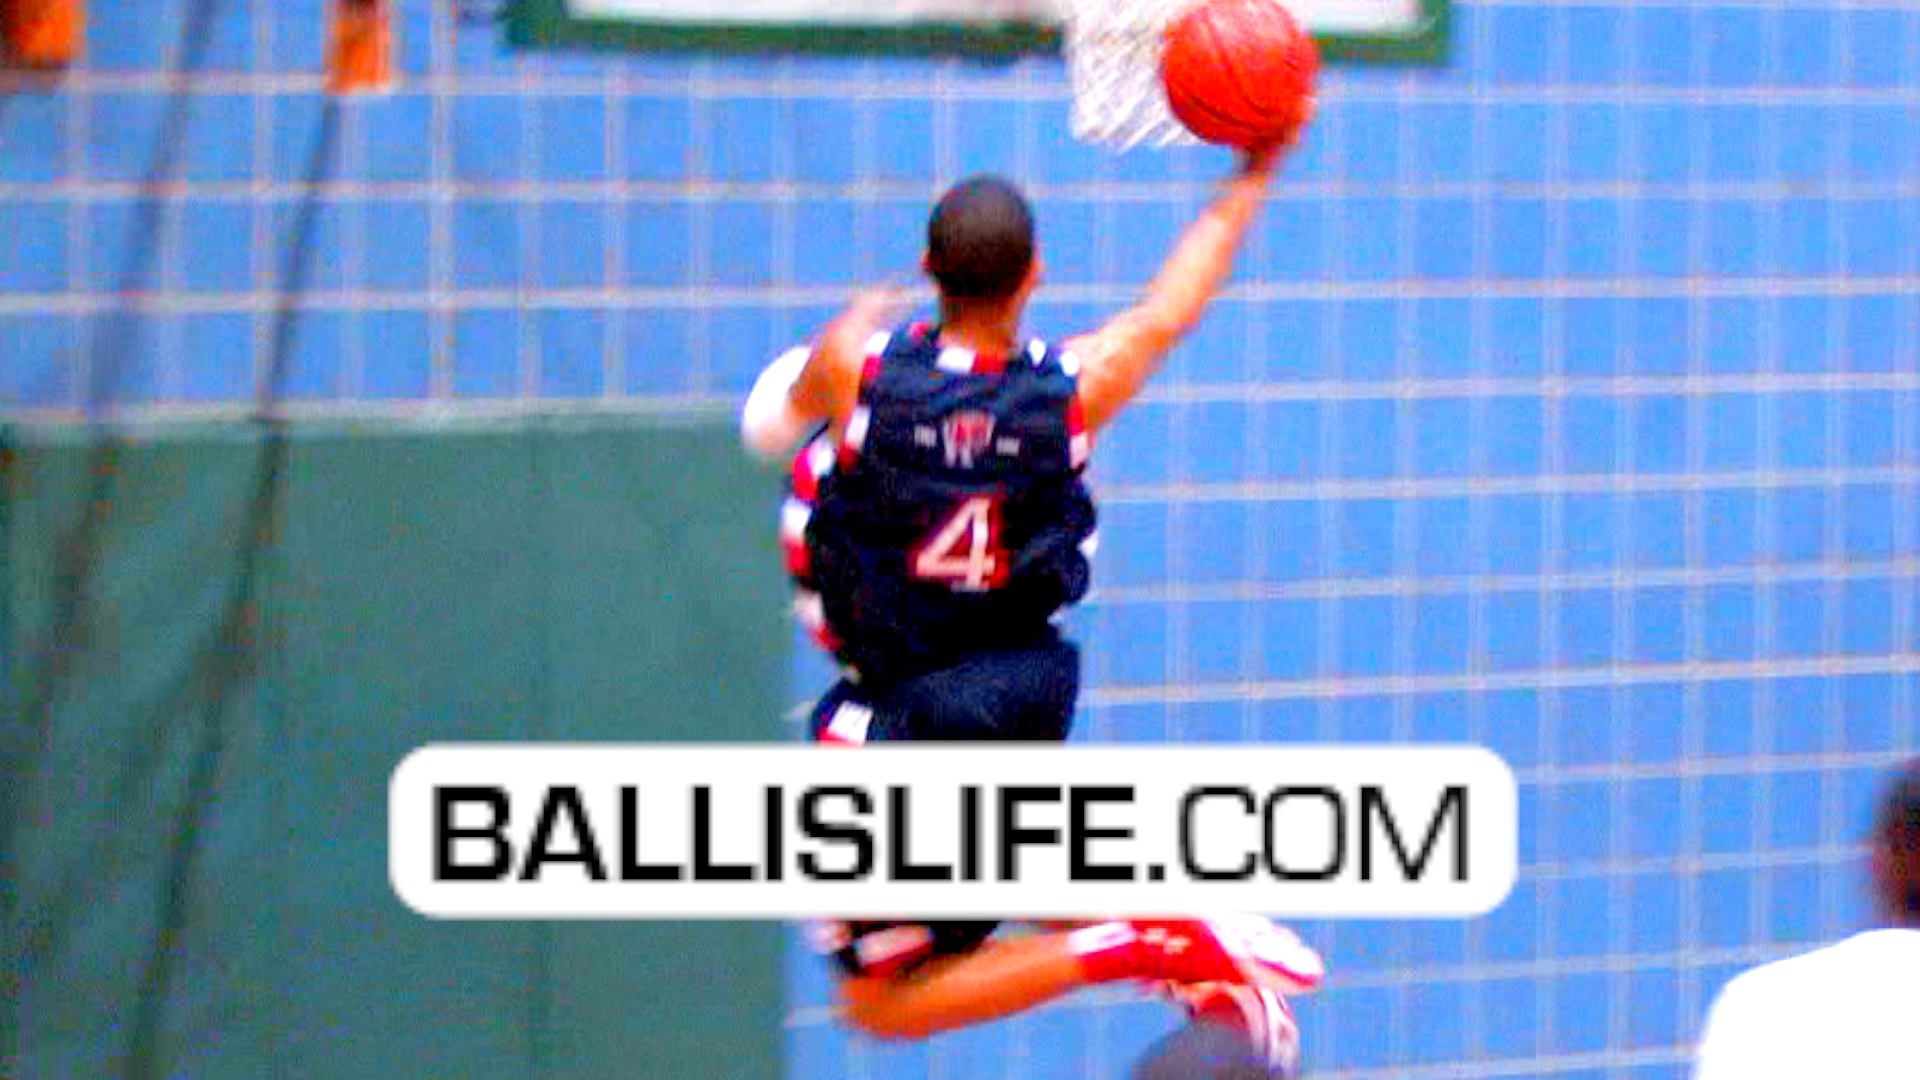 Ballislife | Keith Frazier at Thanksgiving Hoopfest